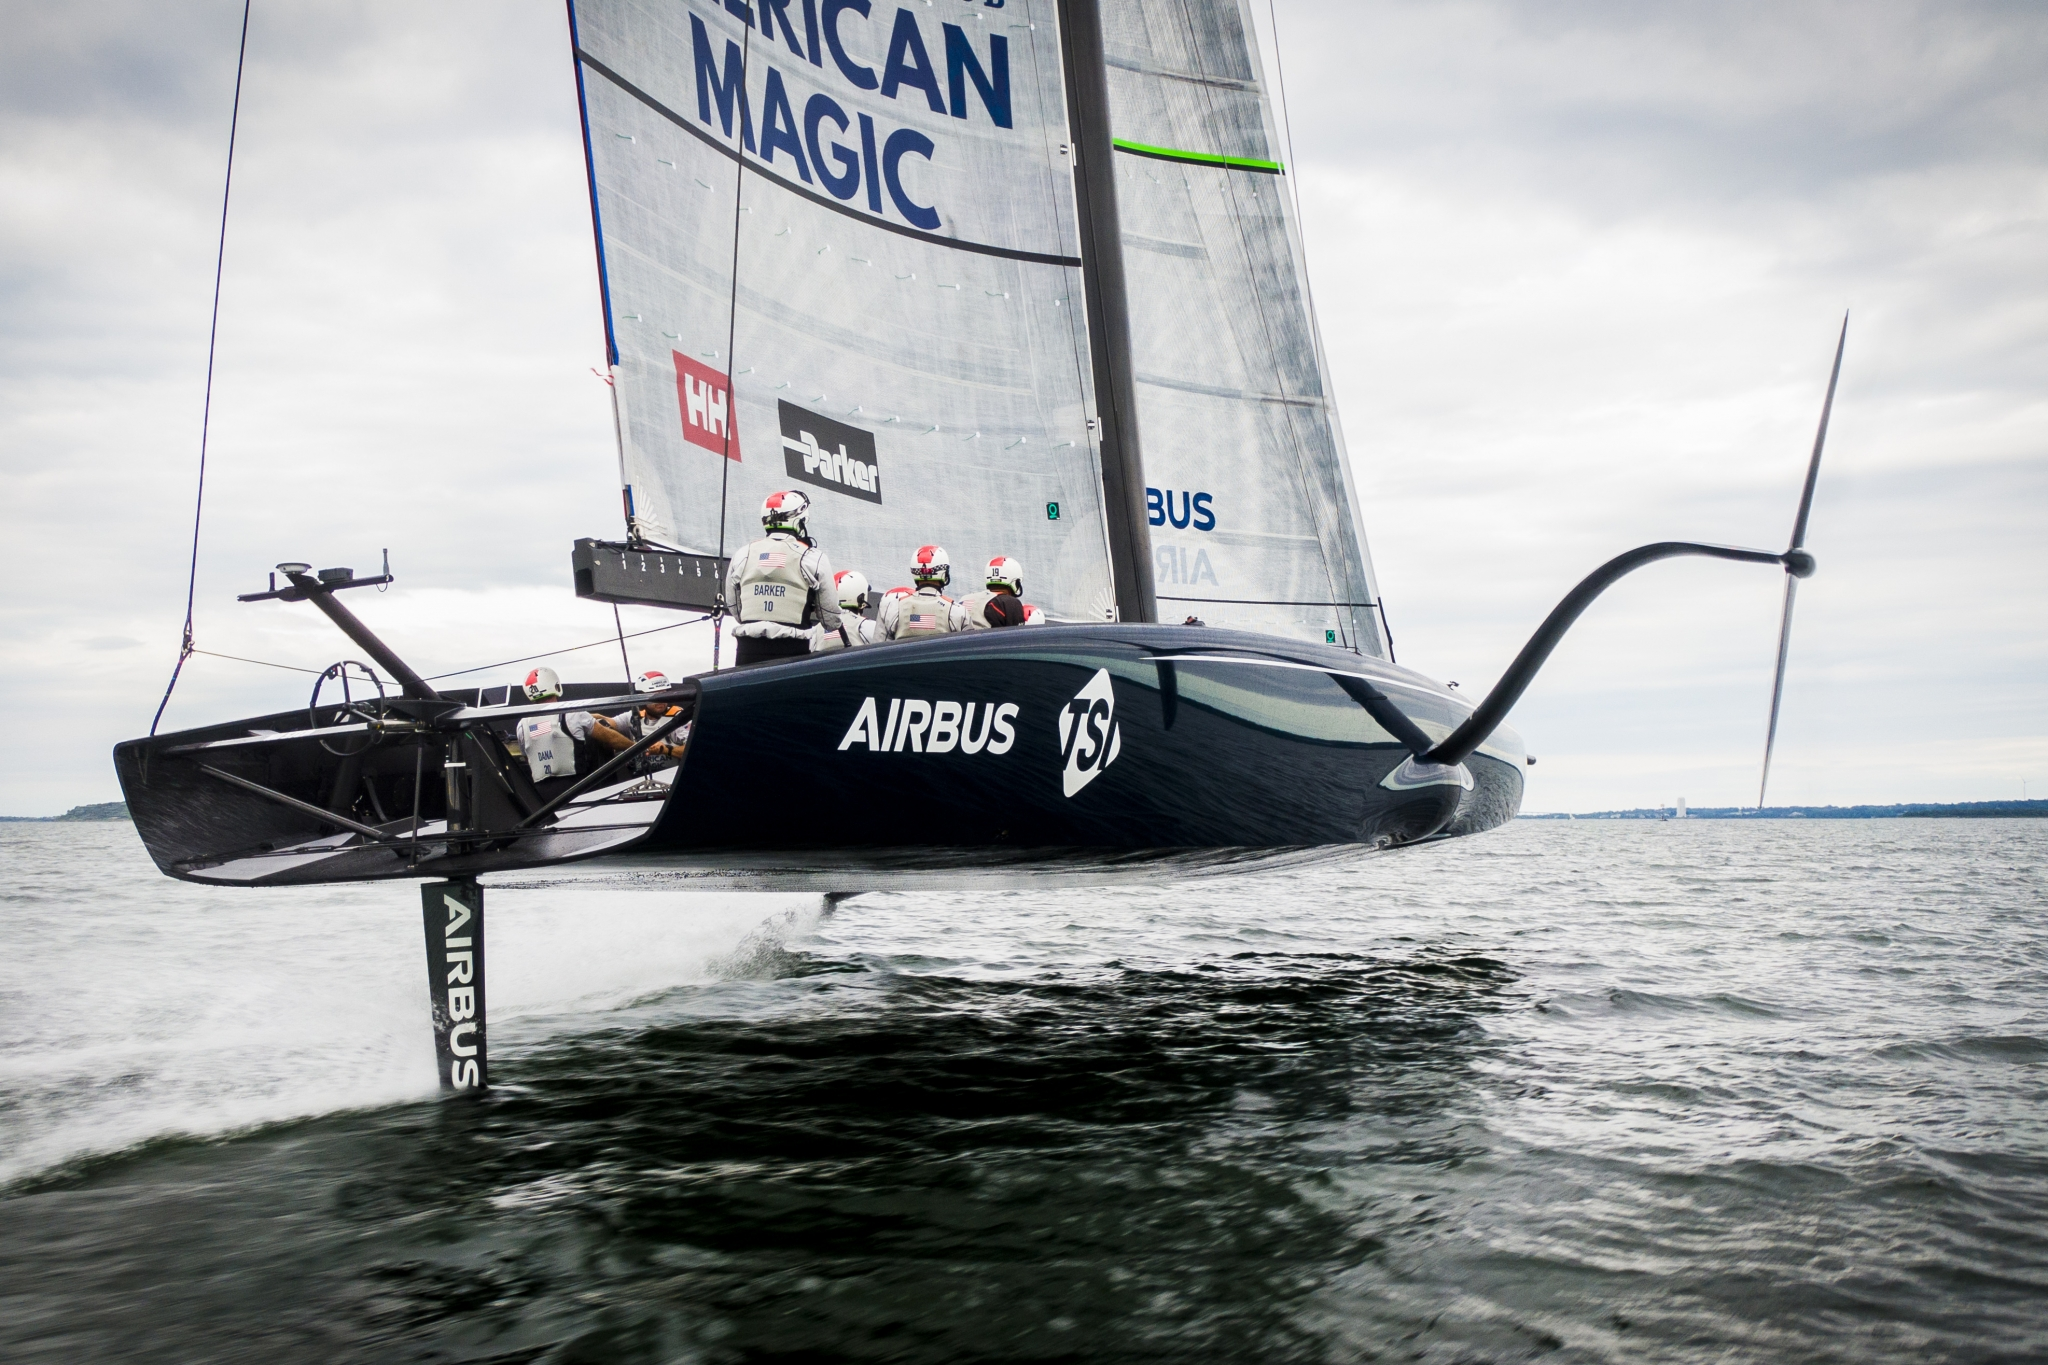 KVH Named Official Supplier of American Magic, Challenger for the 36th America's Cup